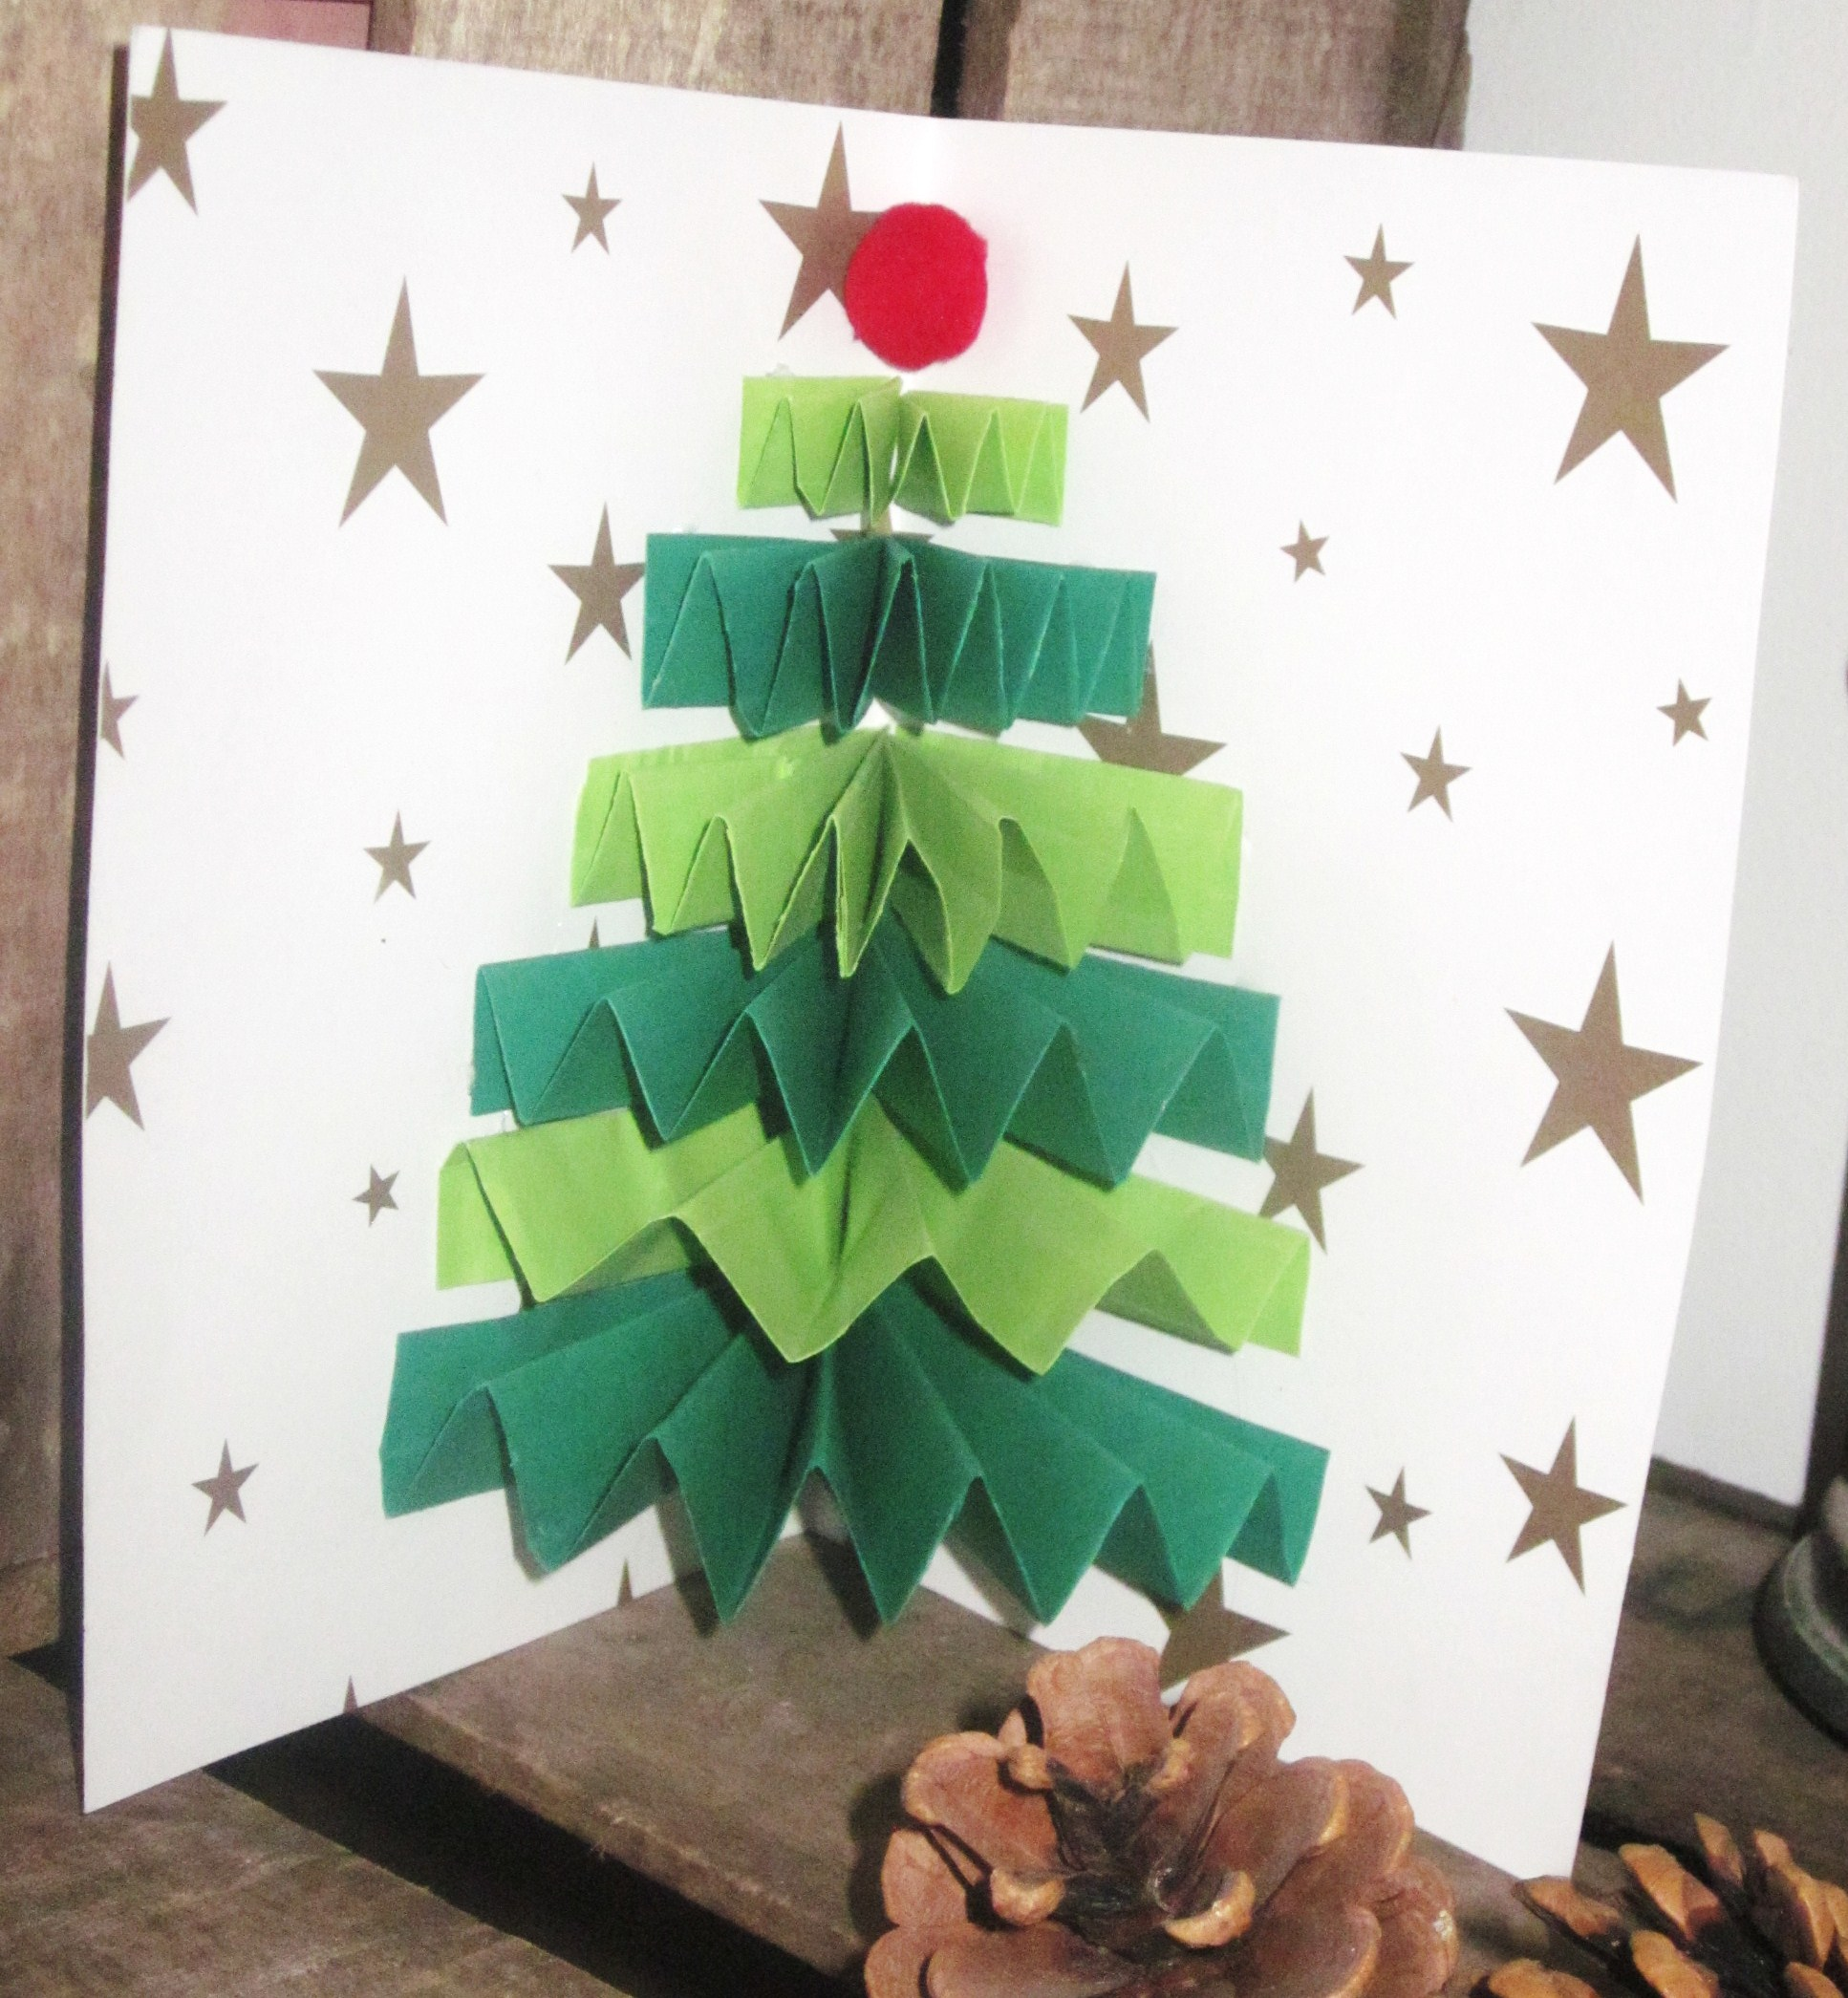 Diy carte sapin de no l accord on - Sapin de noel a fabriquer en carton ...